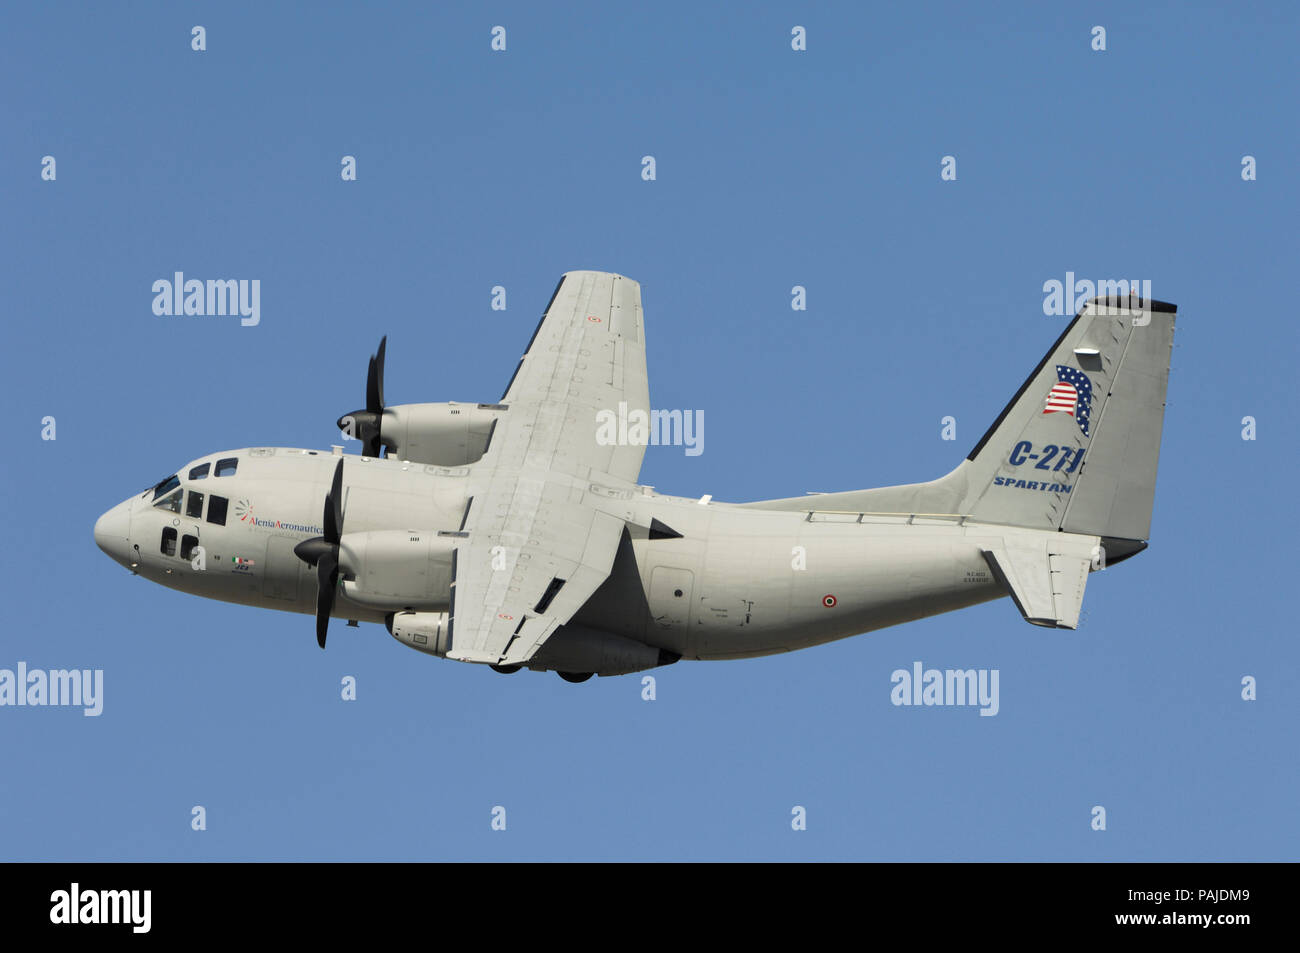 Italy - AirForce Alenia C-27J Spartan flying-display at the Dubai AirShow 2007 Stock Photo